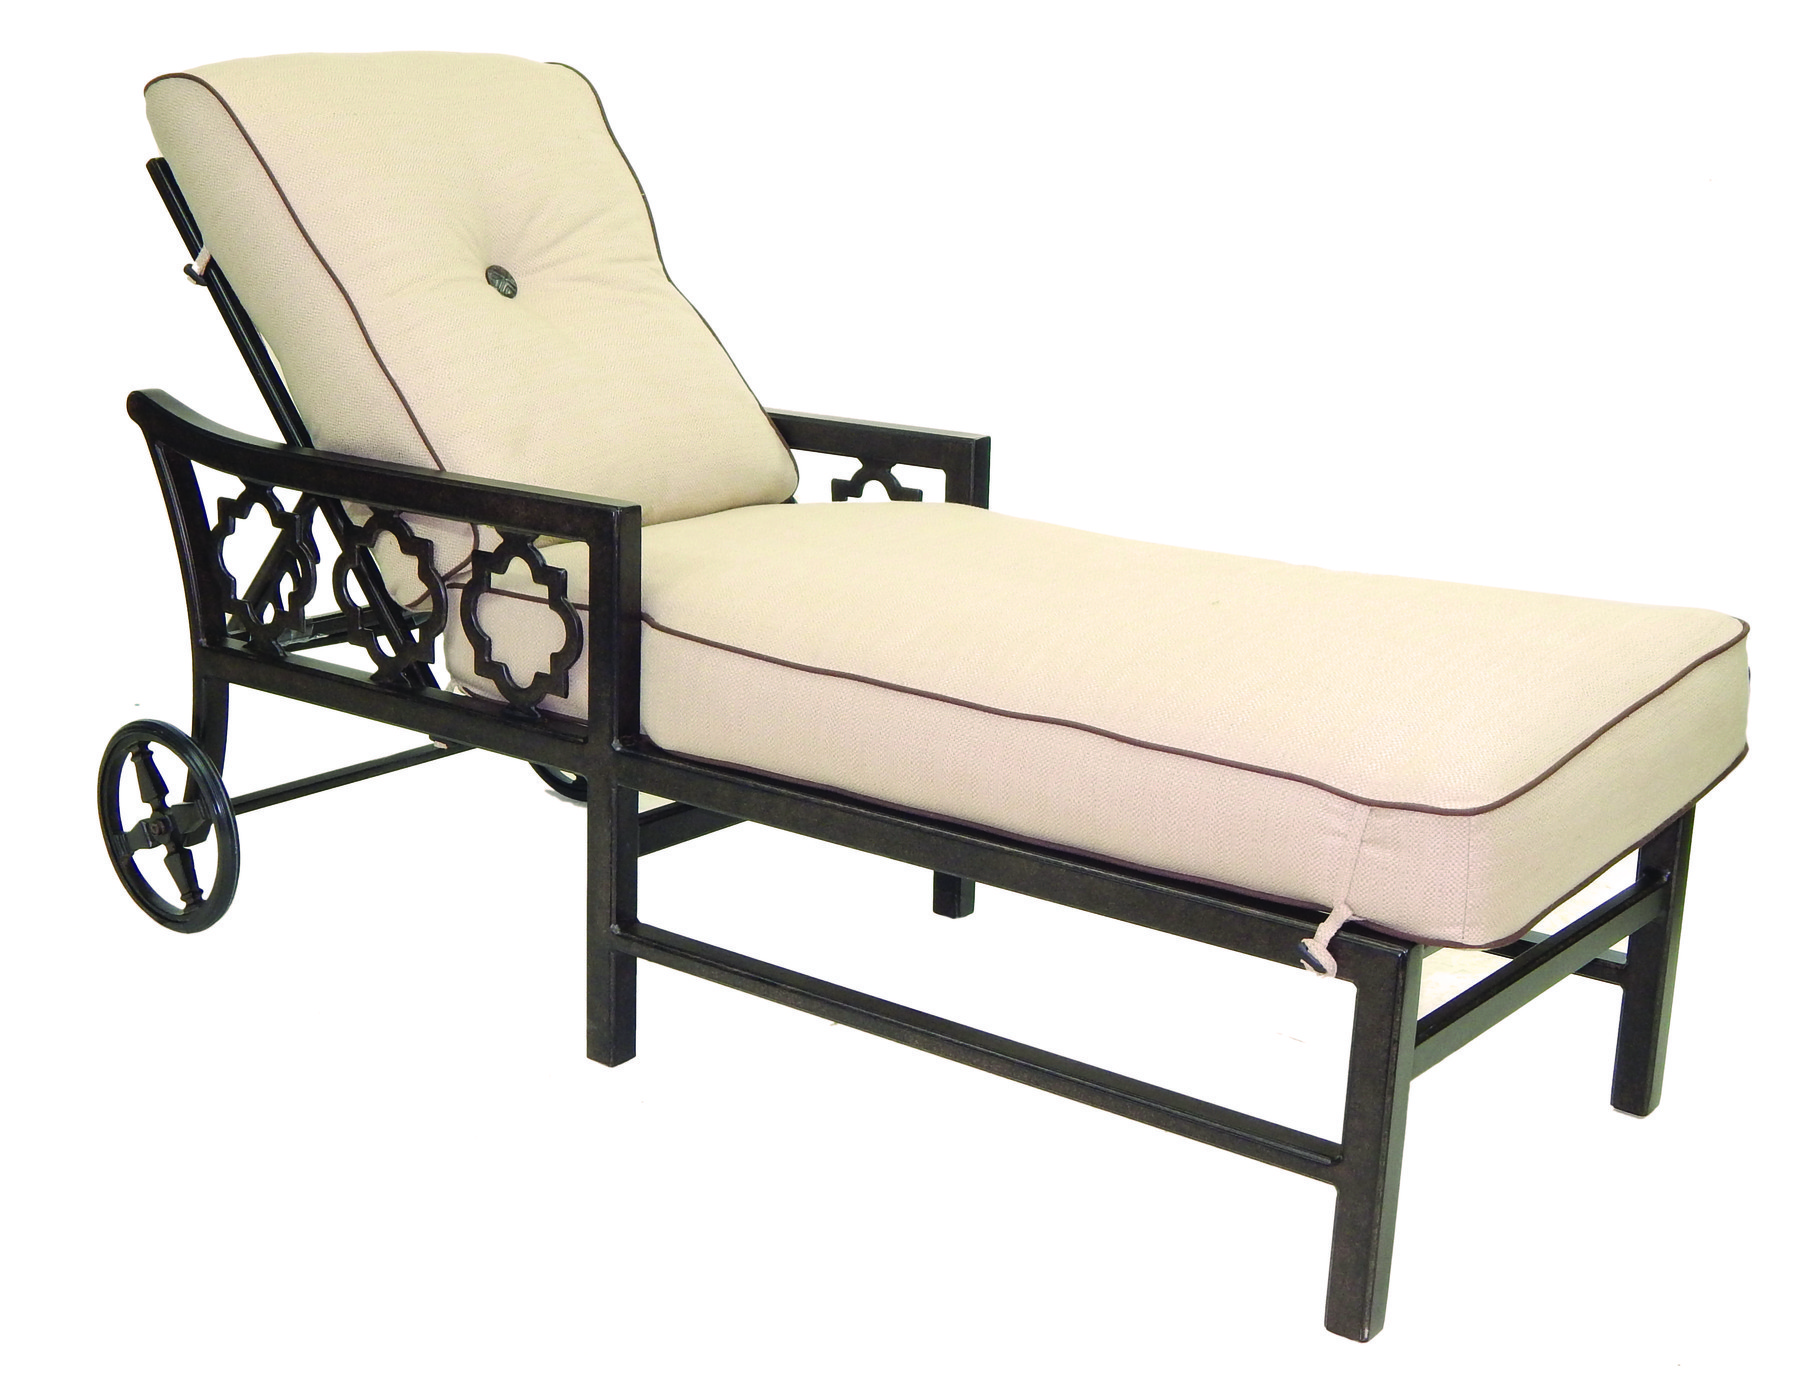 Belle Epoque Cushion Adjustable Chaise Lounge W Wheels